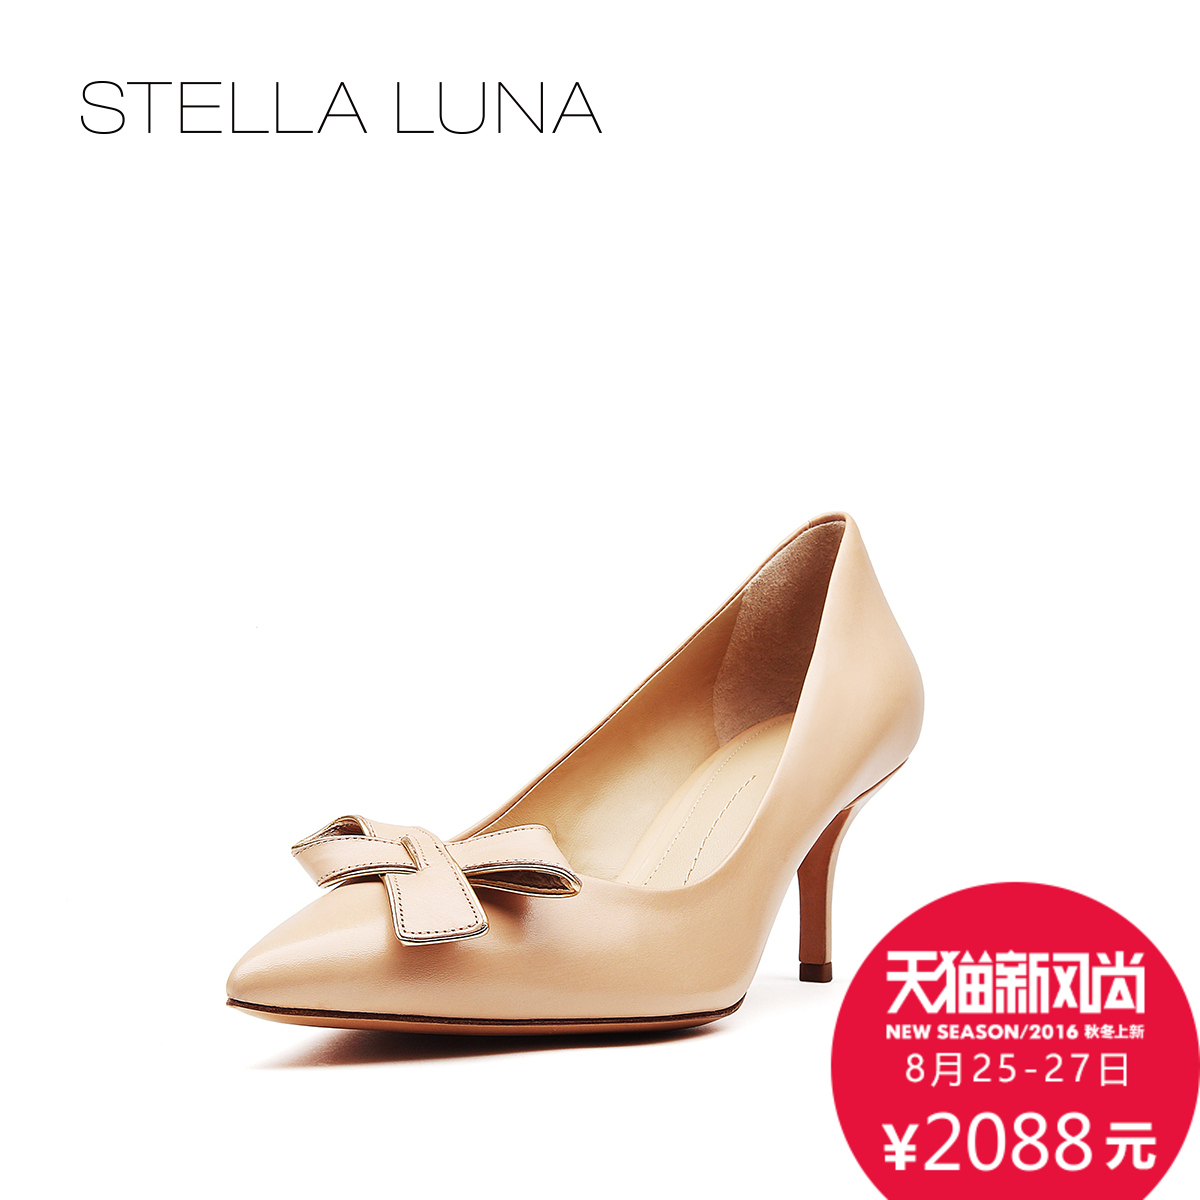 Spring and summer ms. stella LUNA2016 SG133L02821 mirror new bow leather shoes